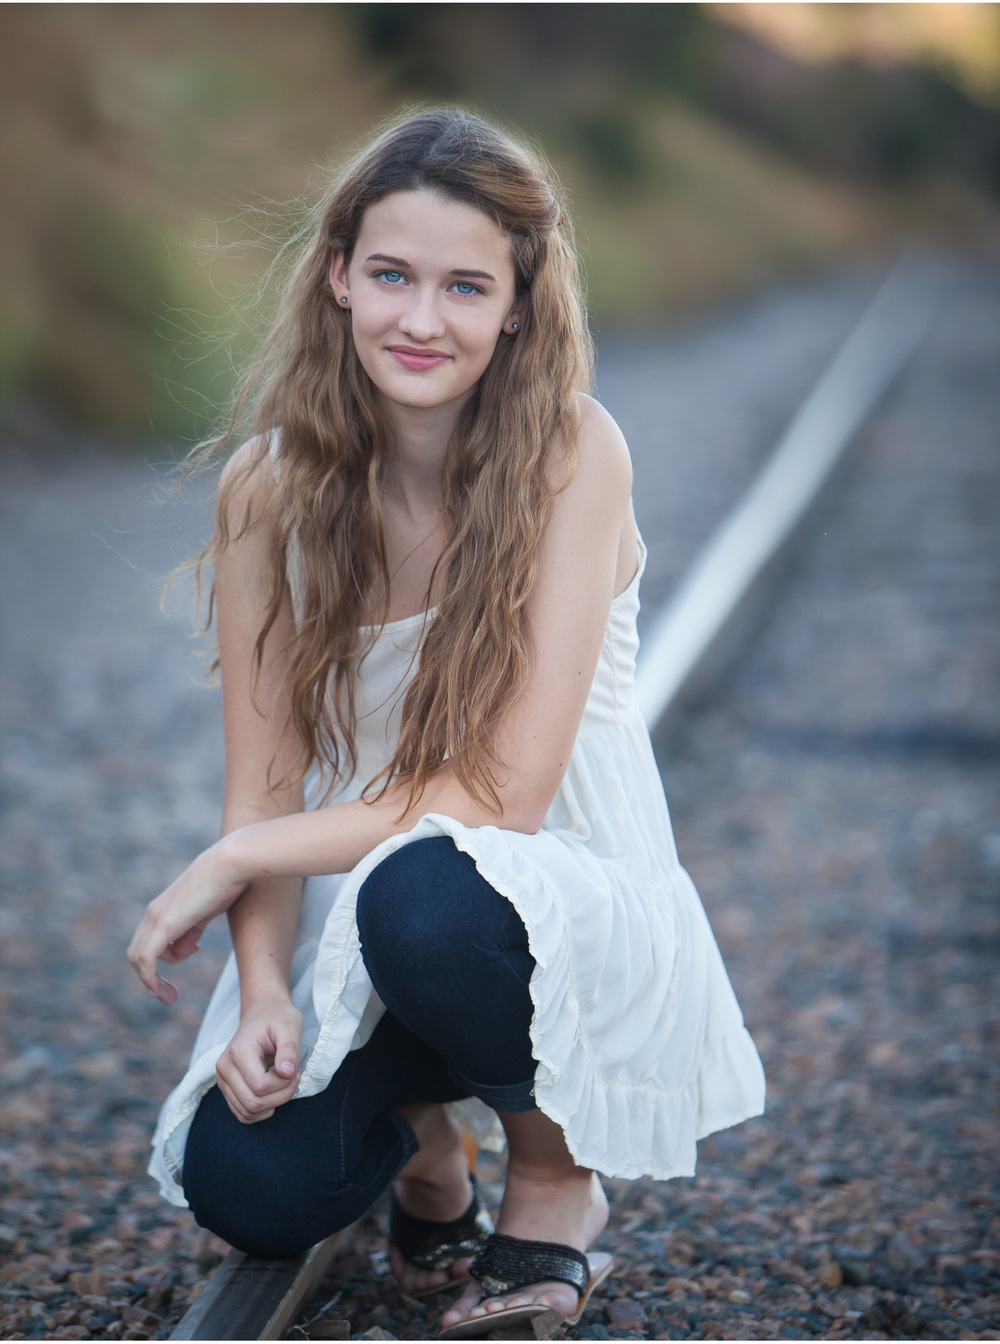 high school senior photo session on out of use traintracks in denver | photographer jennifer koskinen | merritt portrait studio